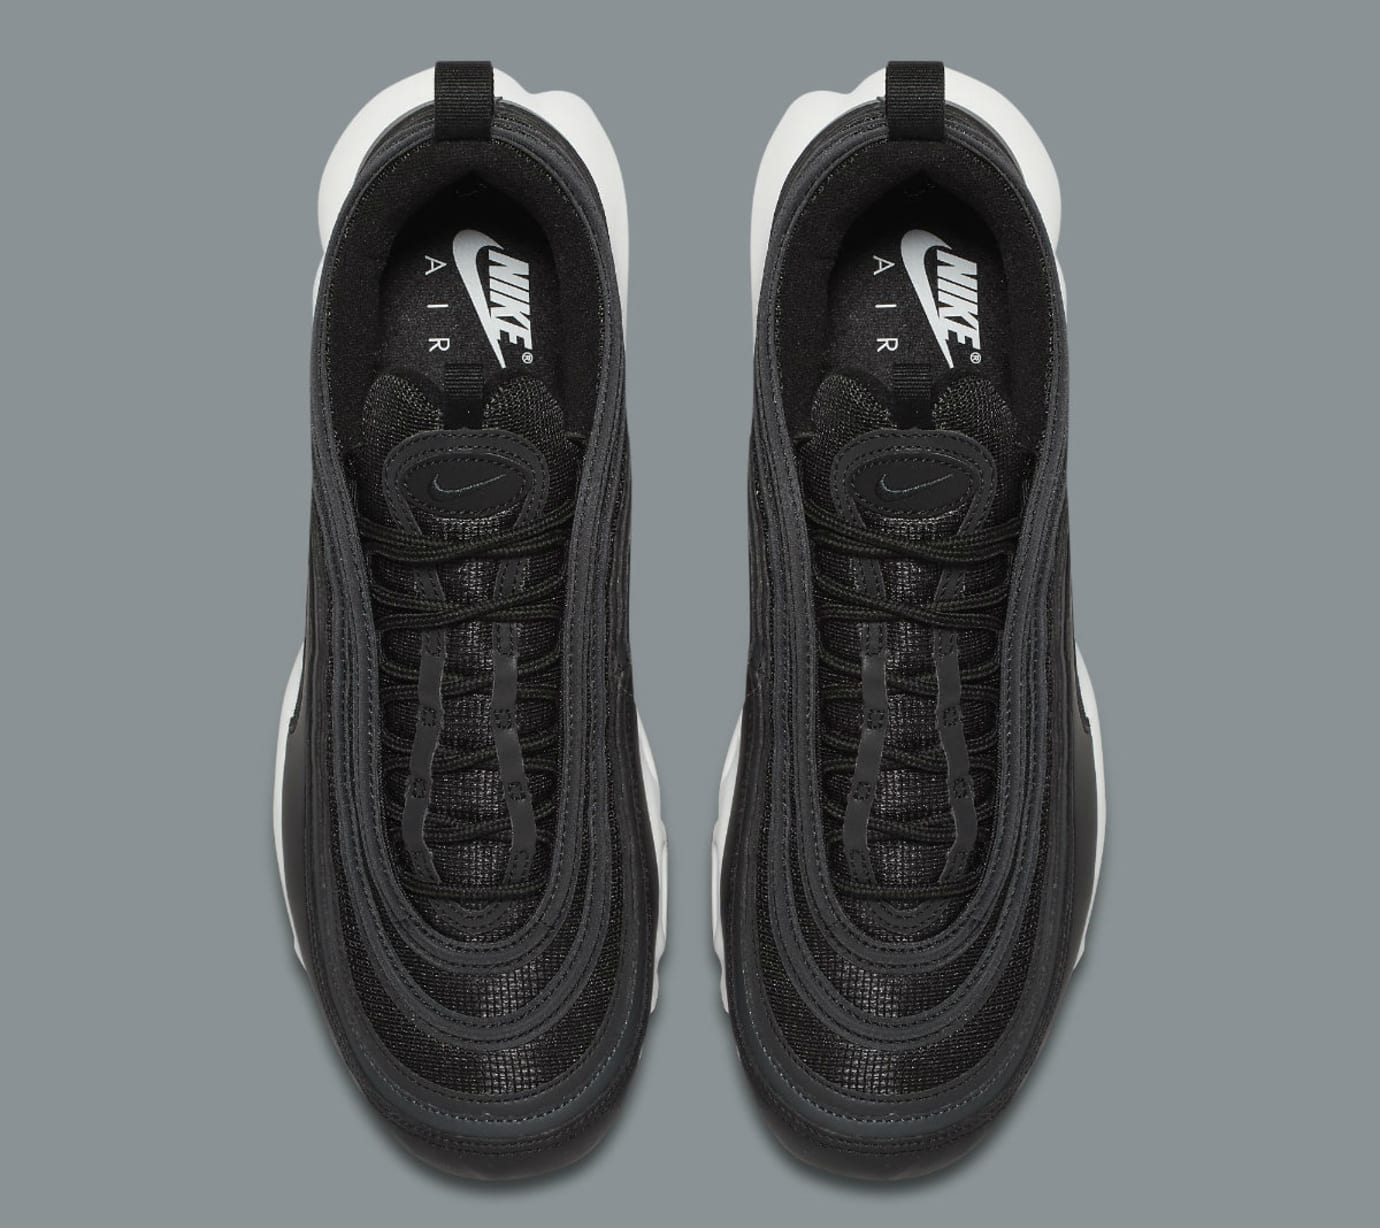 Nike Air Max Plus 97 Black White Release Date Top AH8143-001